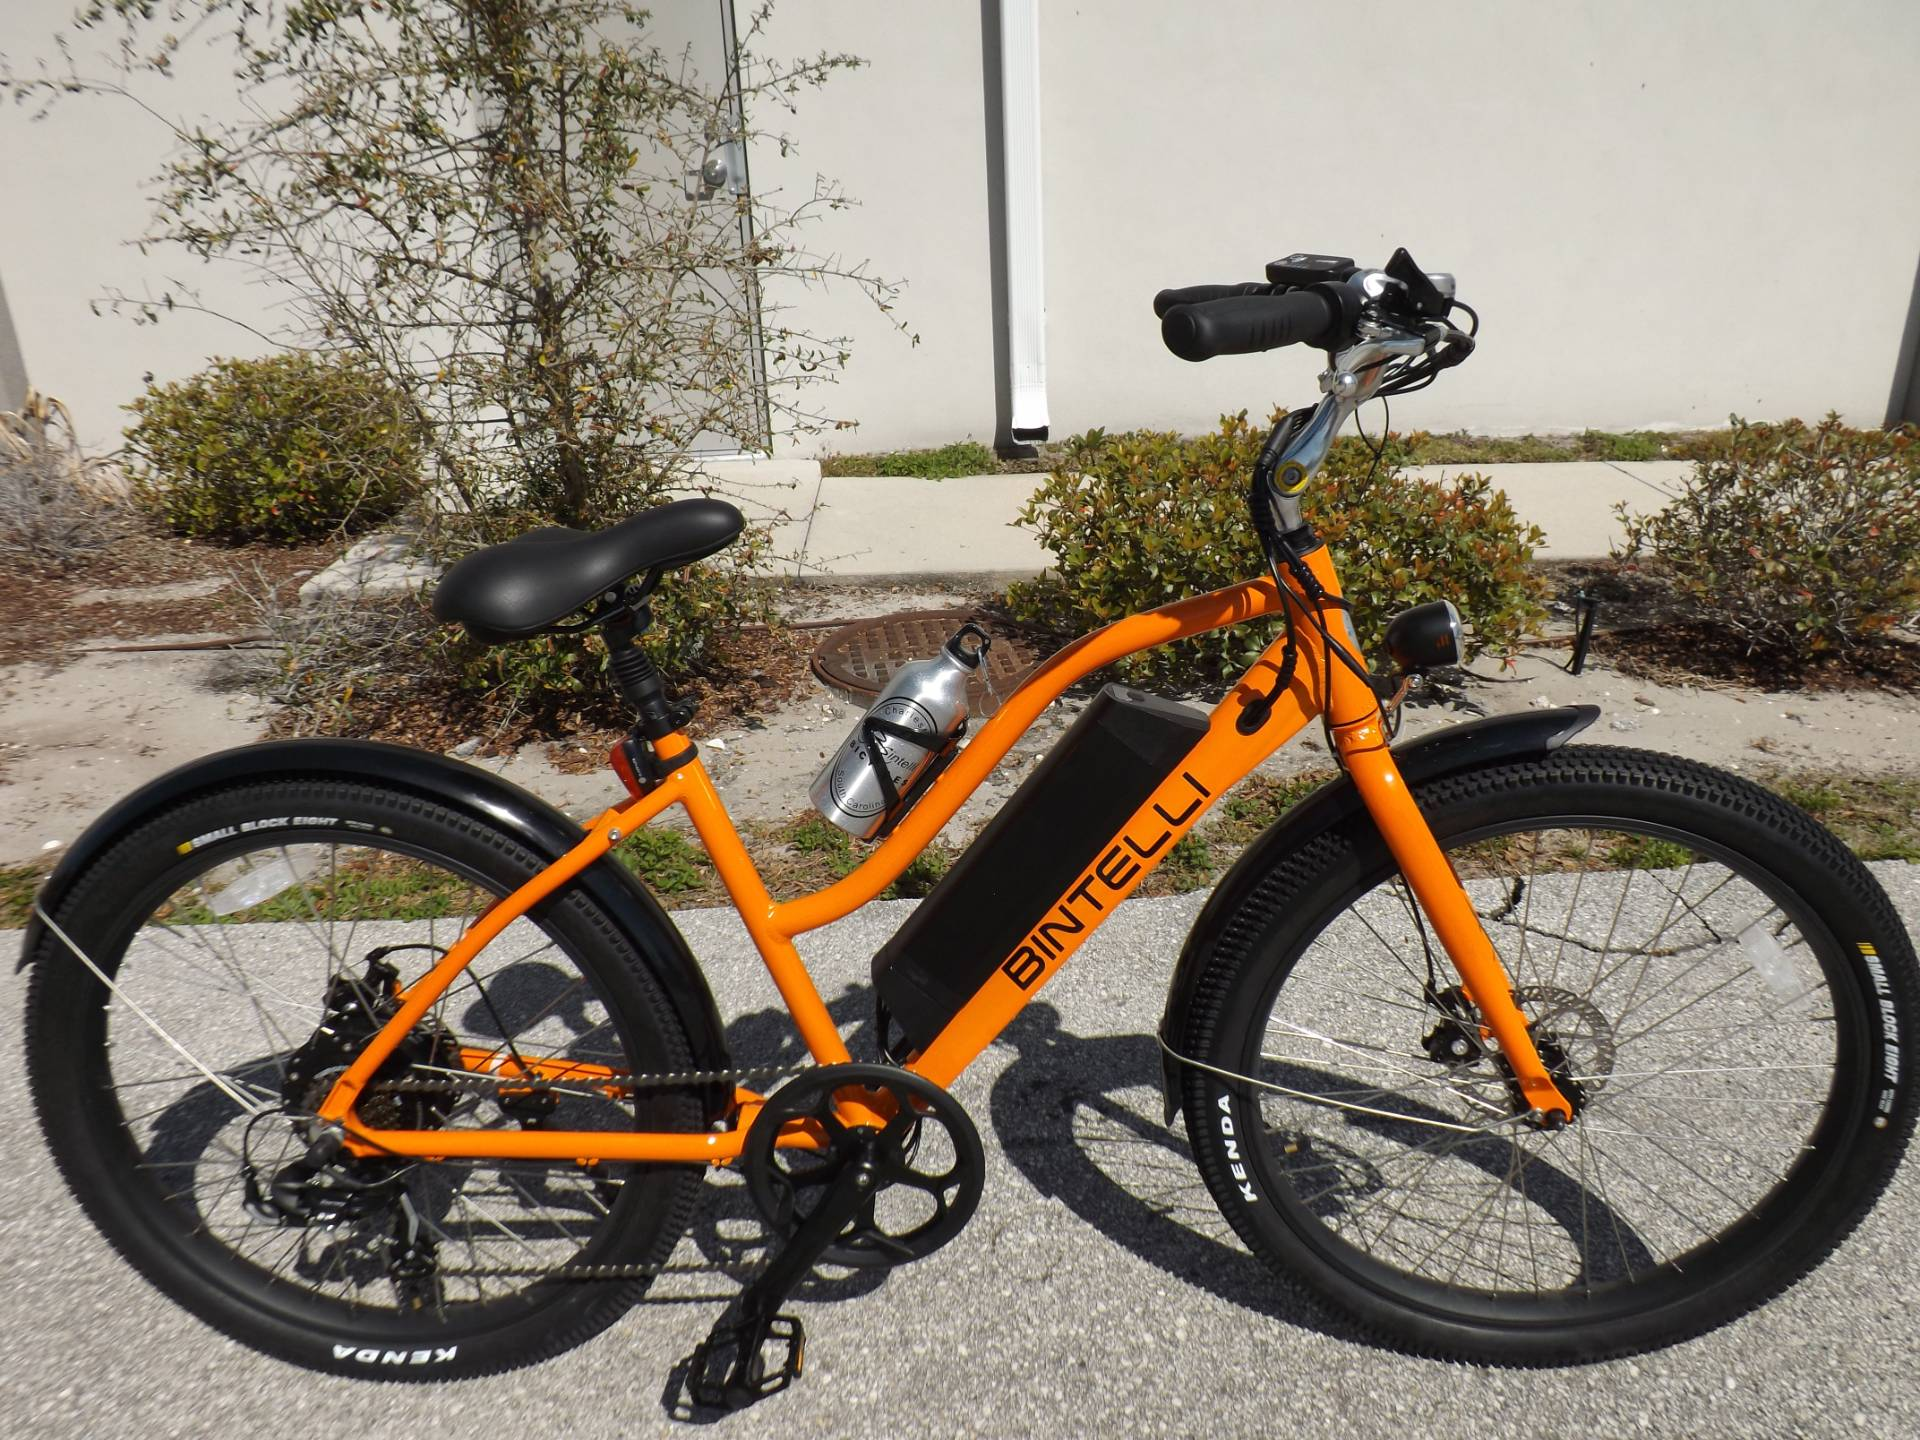 2021 Bintelli B1 ELECTRIC CRUISER BIKE in Lakeland, Florida - Photo 3